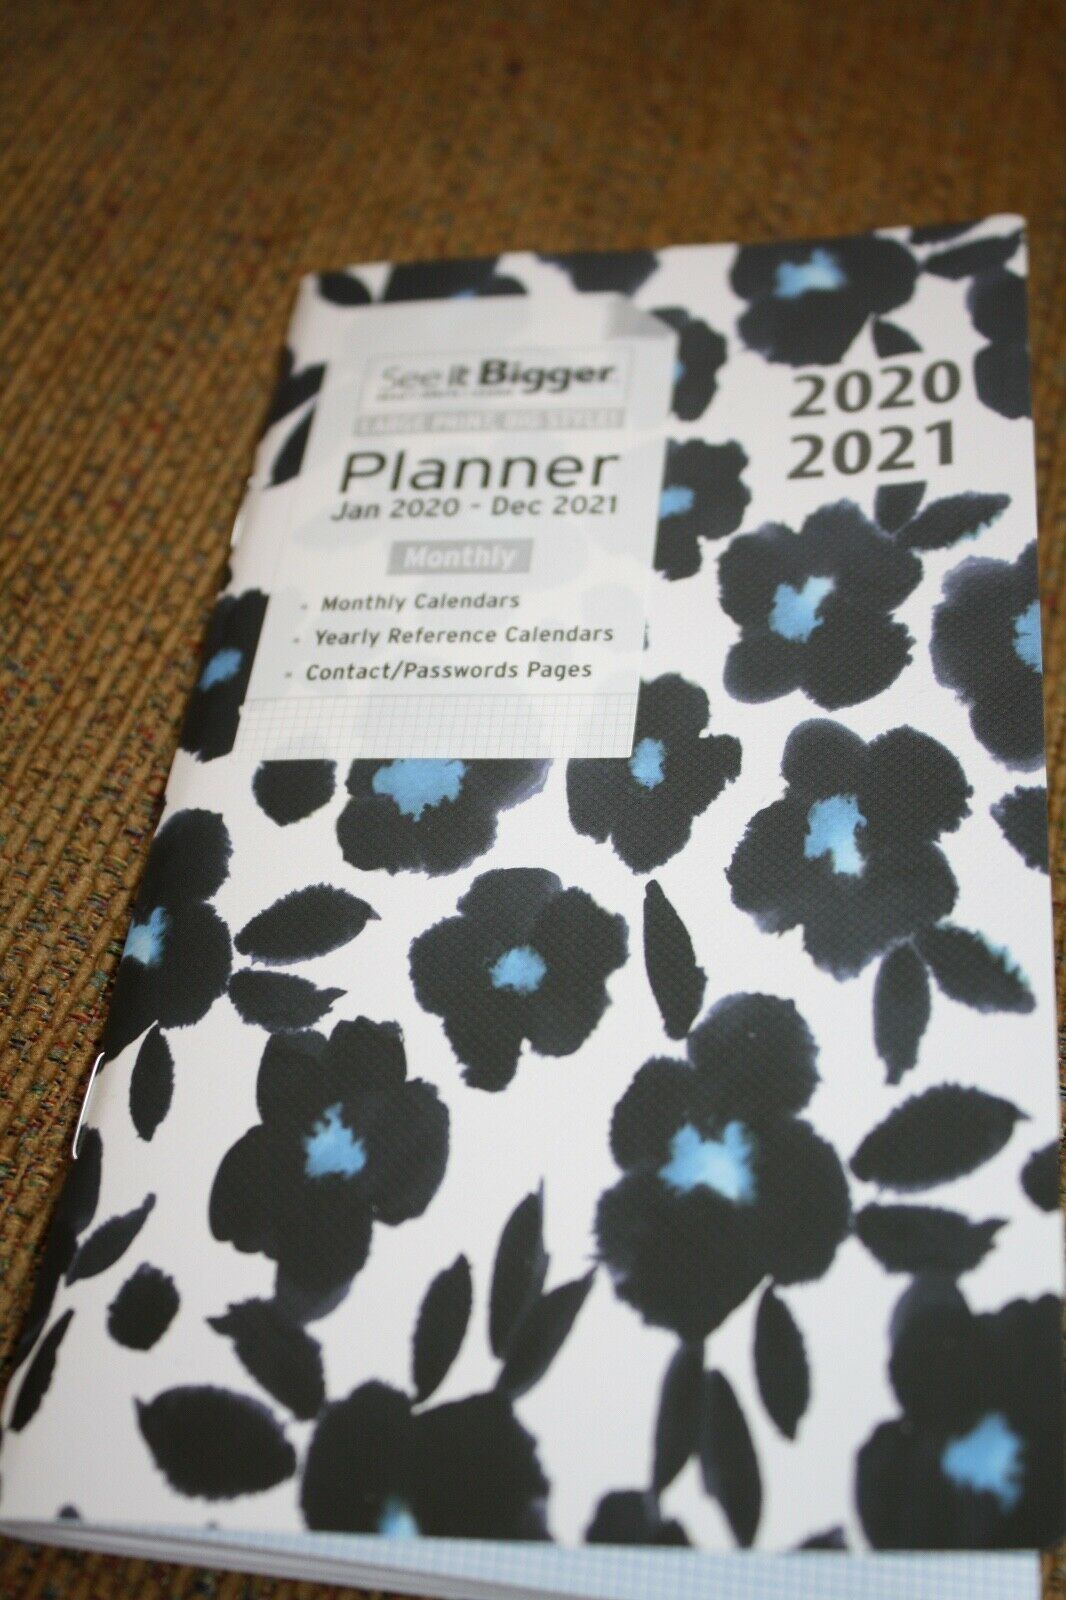 Planahead 88176 8.5X11 Inch See It Bigger Planner with regard to Hunting Planner 2021 Monthly